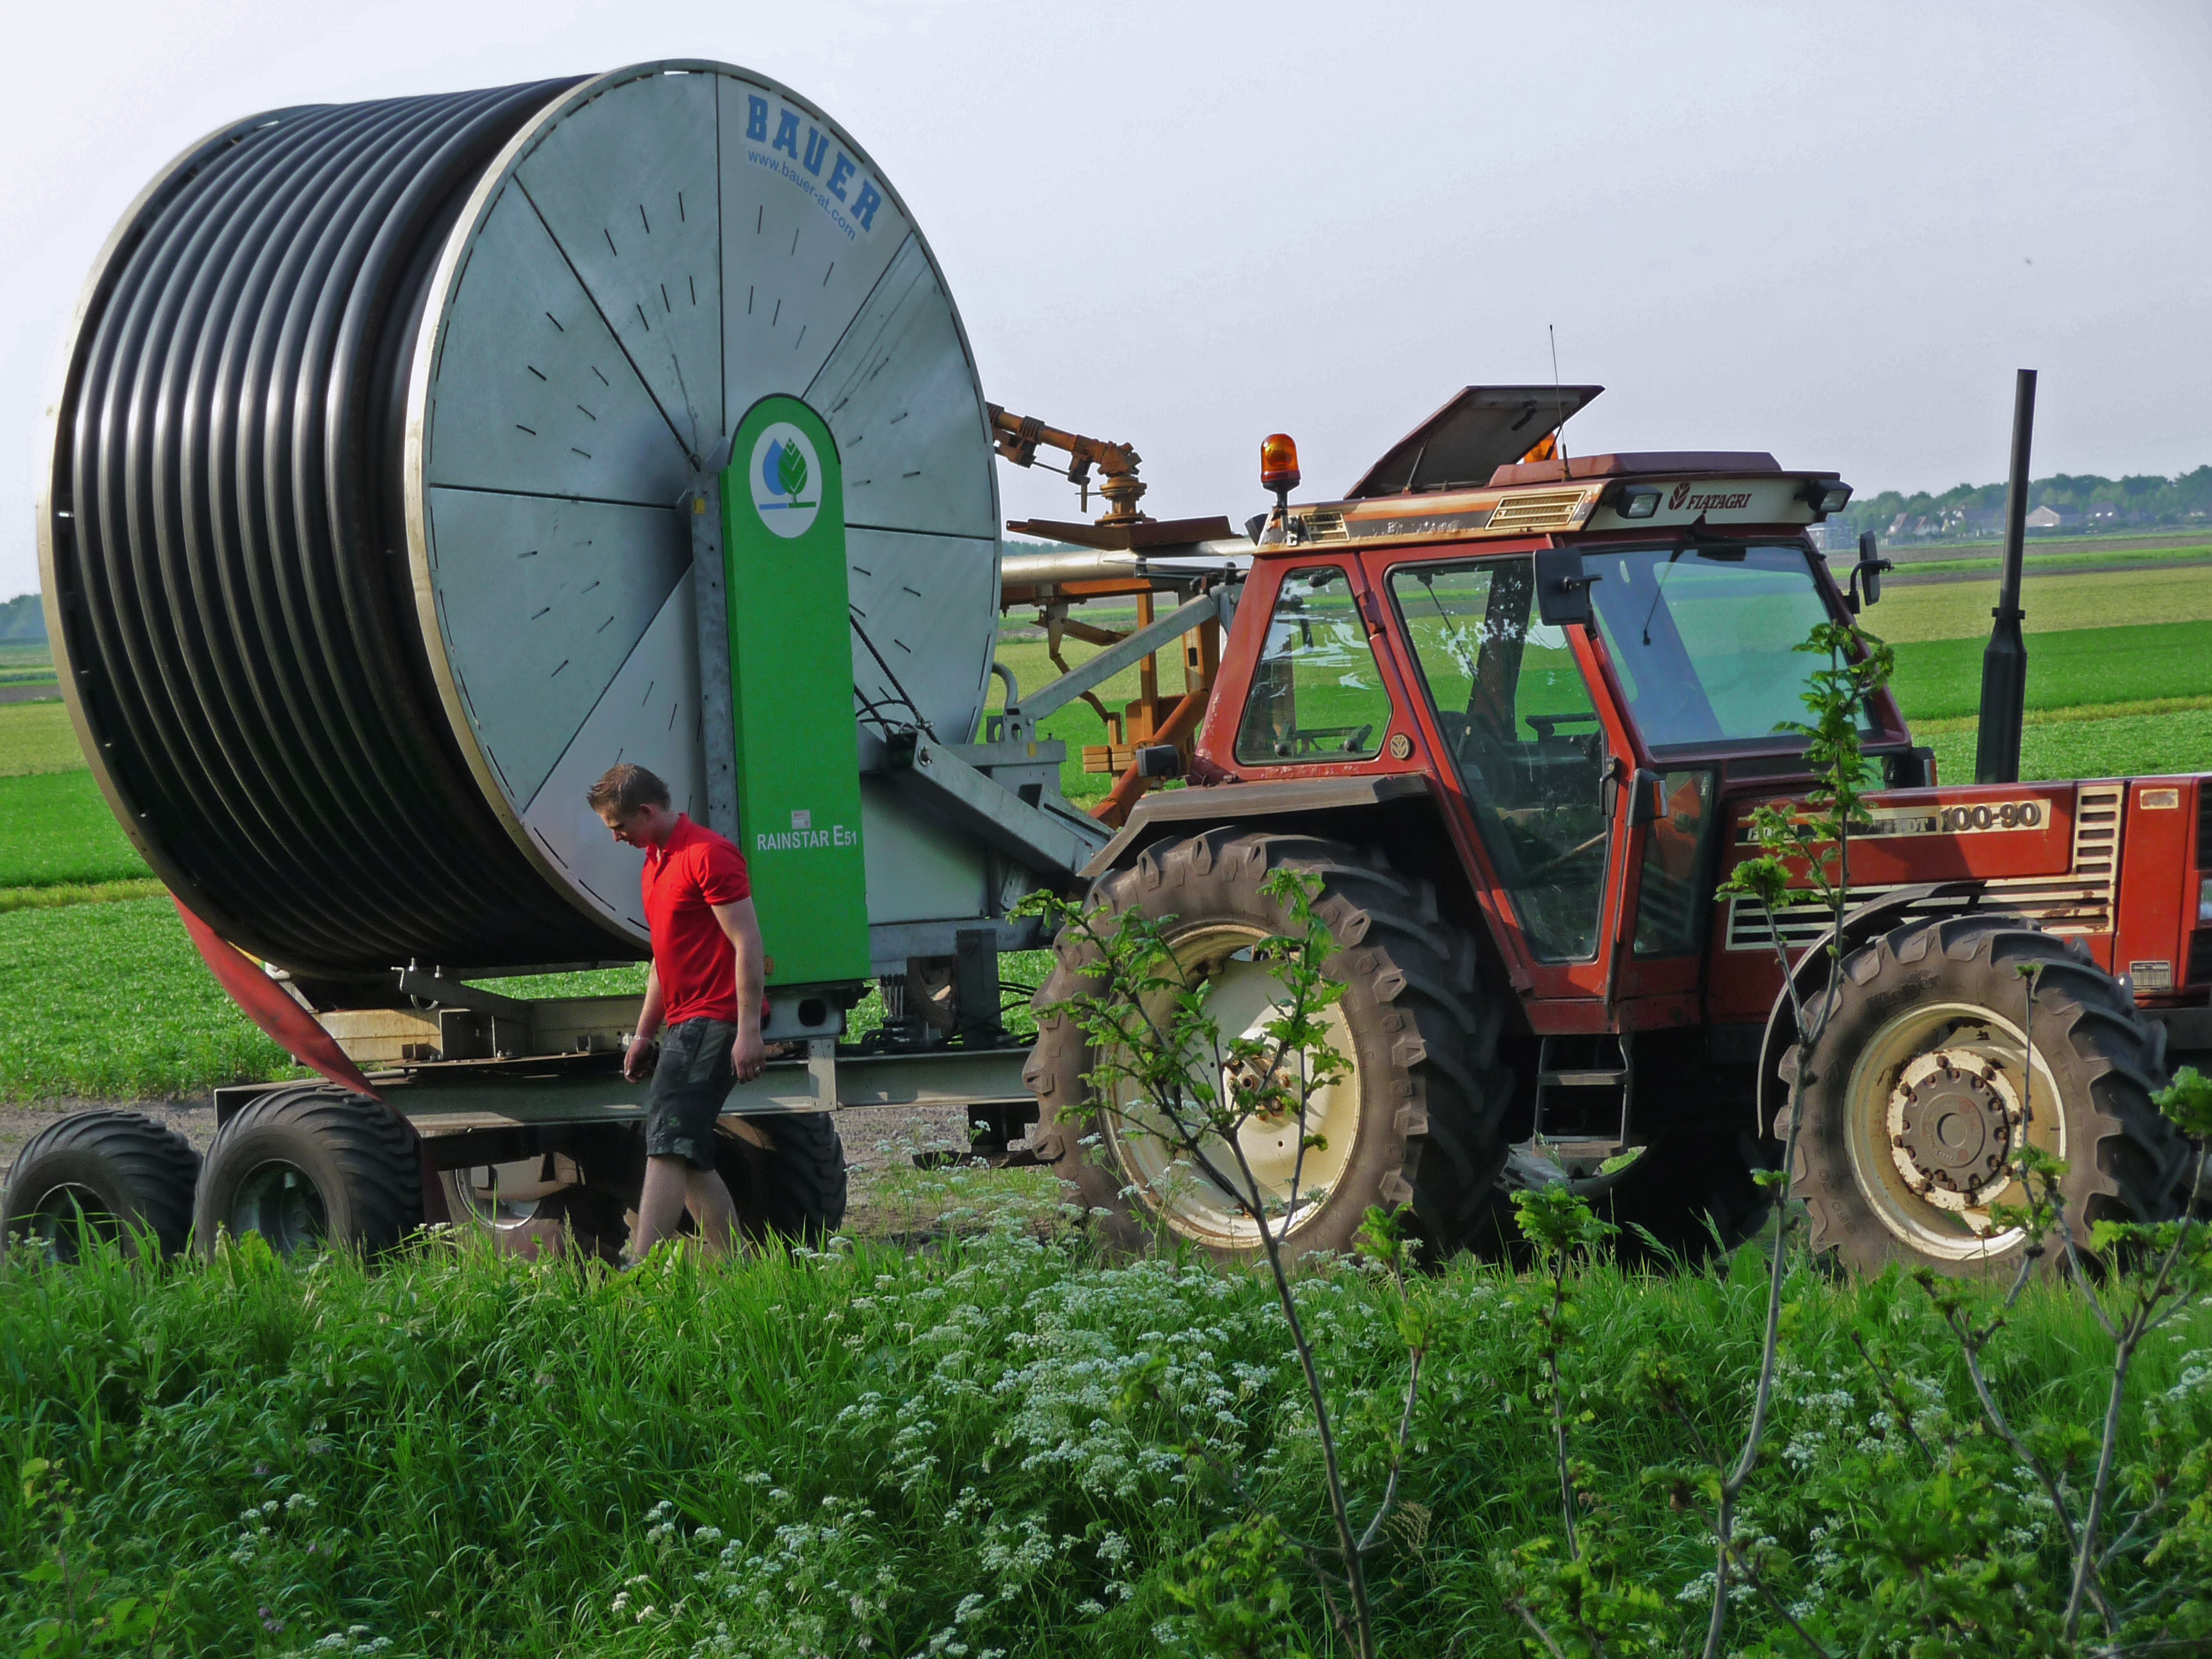 Tractor Water Pipe : Bestand a tractor with huge turning mobile role of